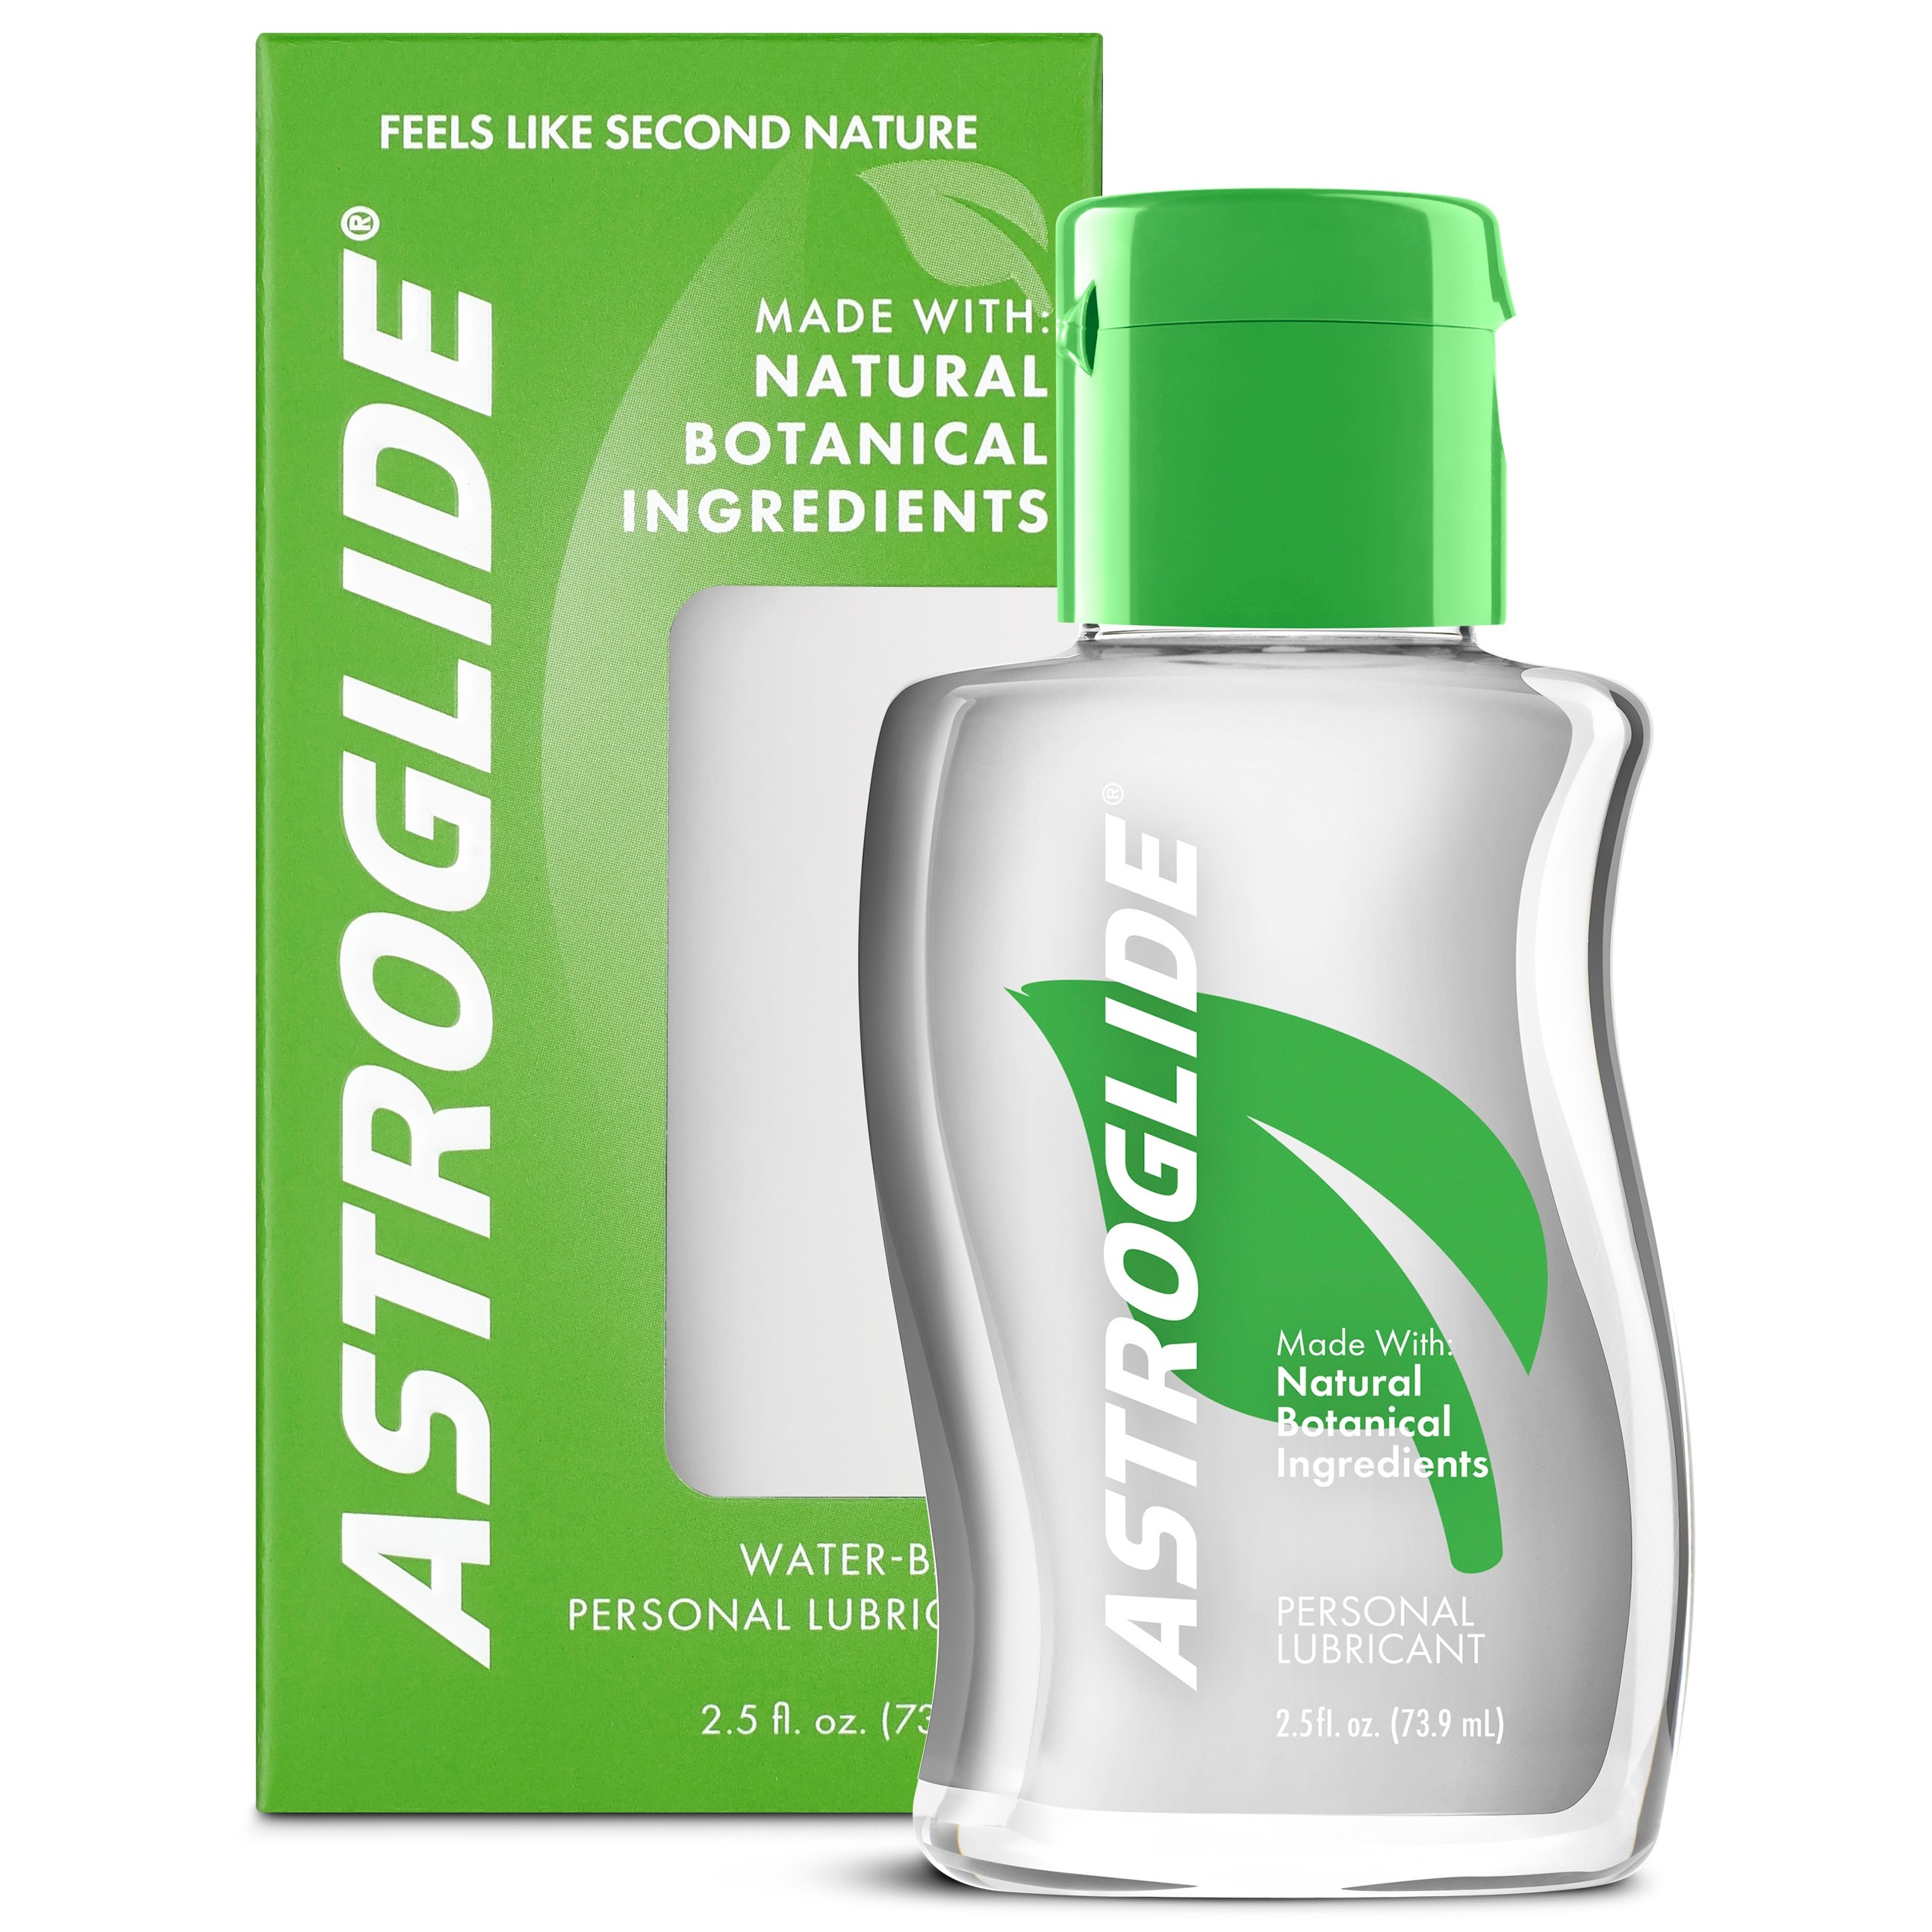 Astroglide Natural Feel Botanical Personal Water Based Lubricant - 2.5 oz